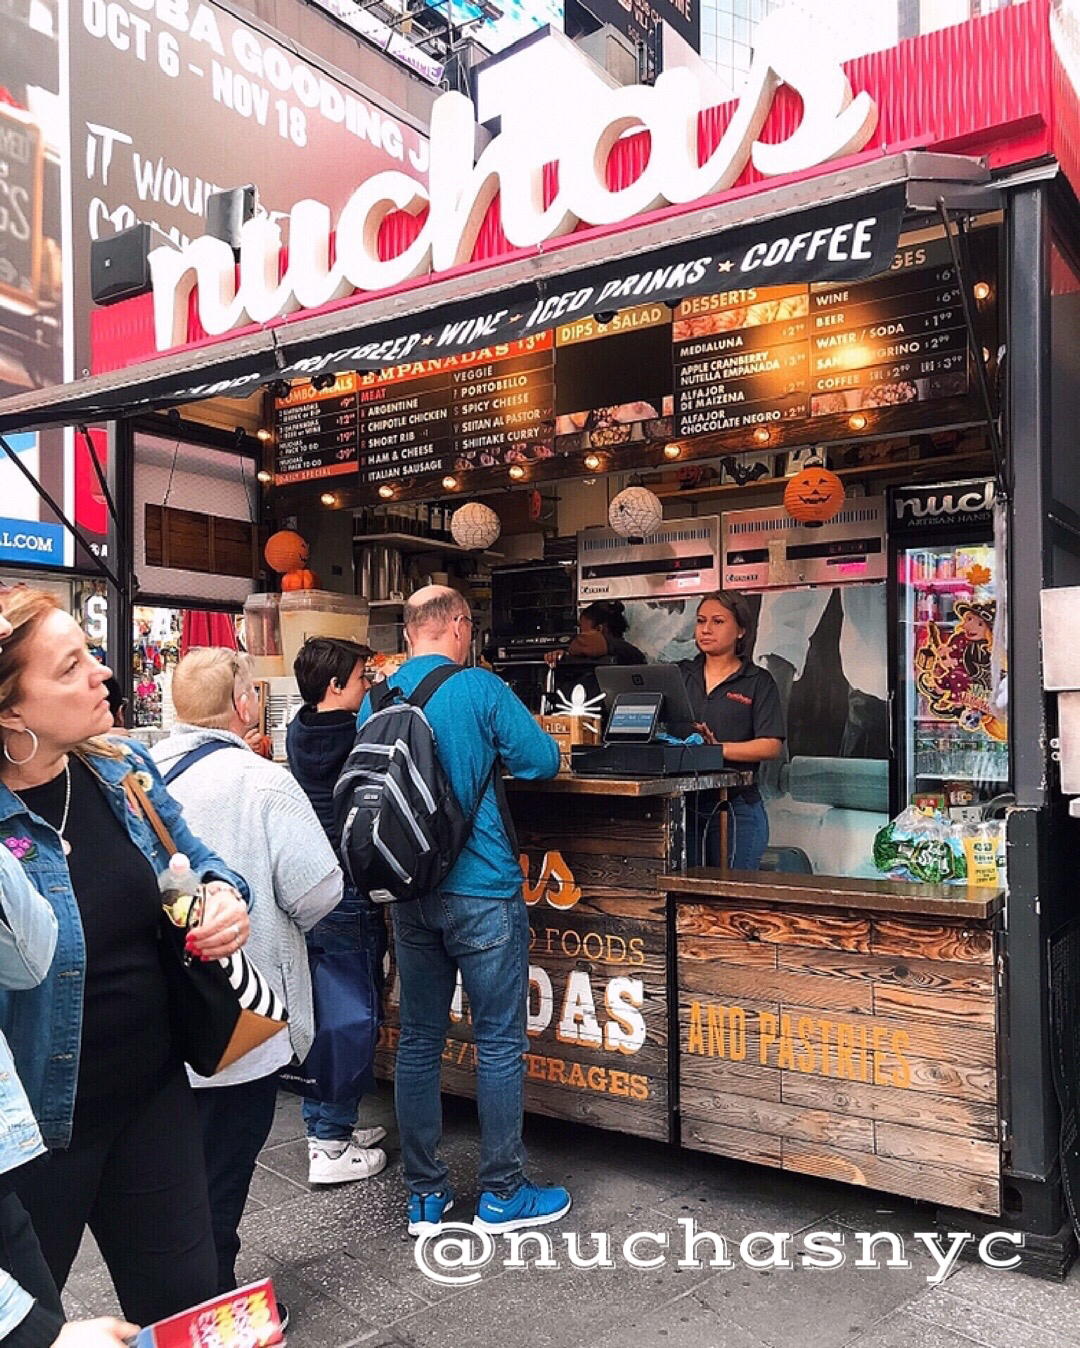 Gourmet Food Trucks in NYC That You Can Find on Delivery Apps